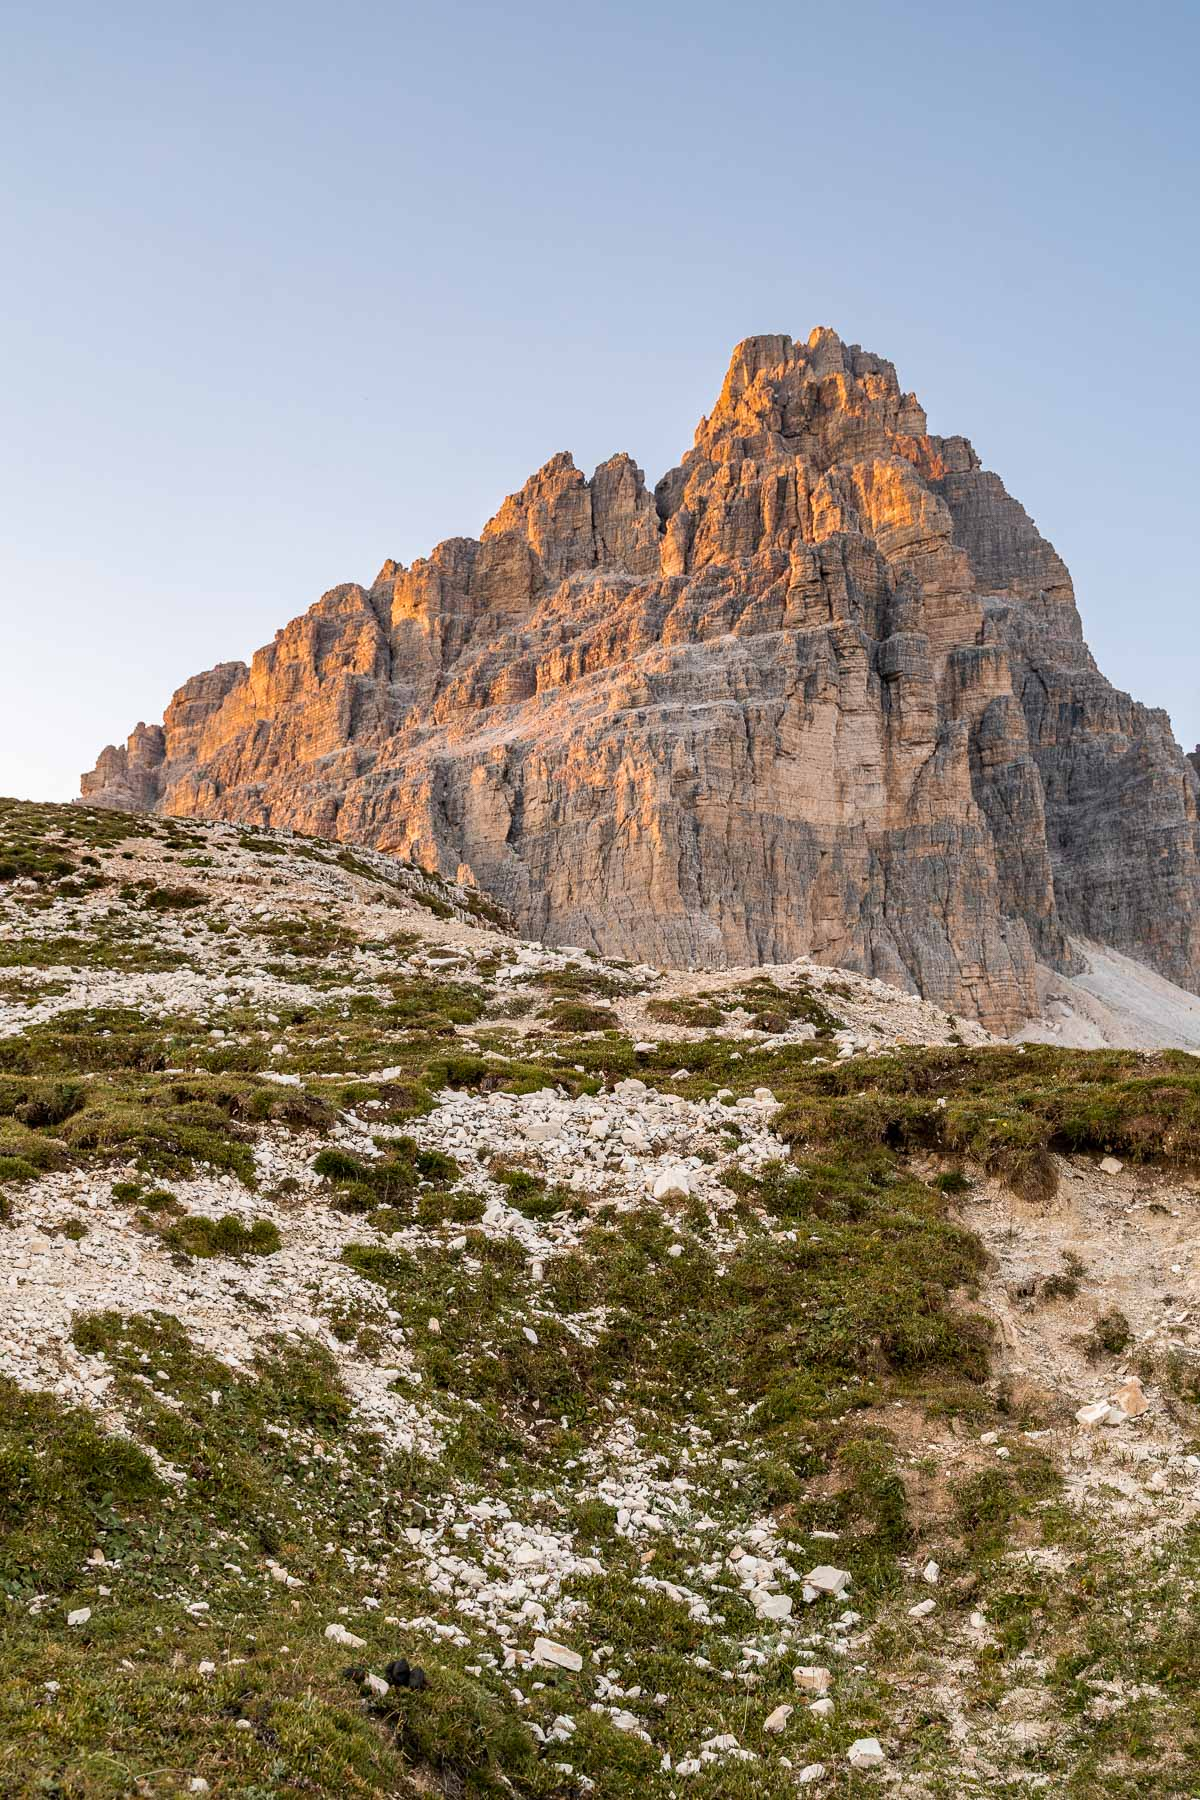 Sunset at Tre Cime di Lavaredo, which is a must visit on every Dolomites road trip itinerary